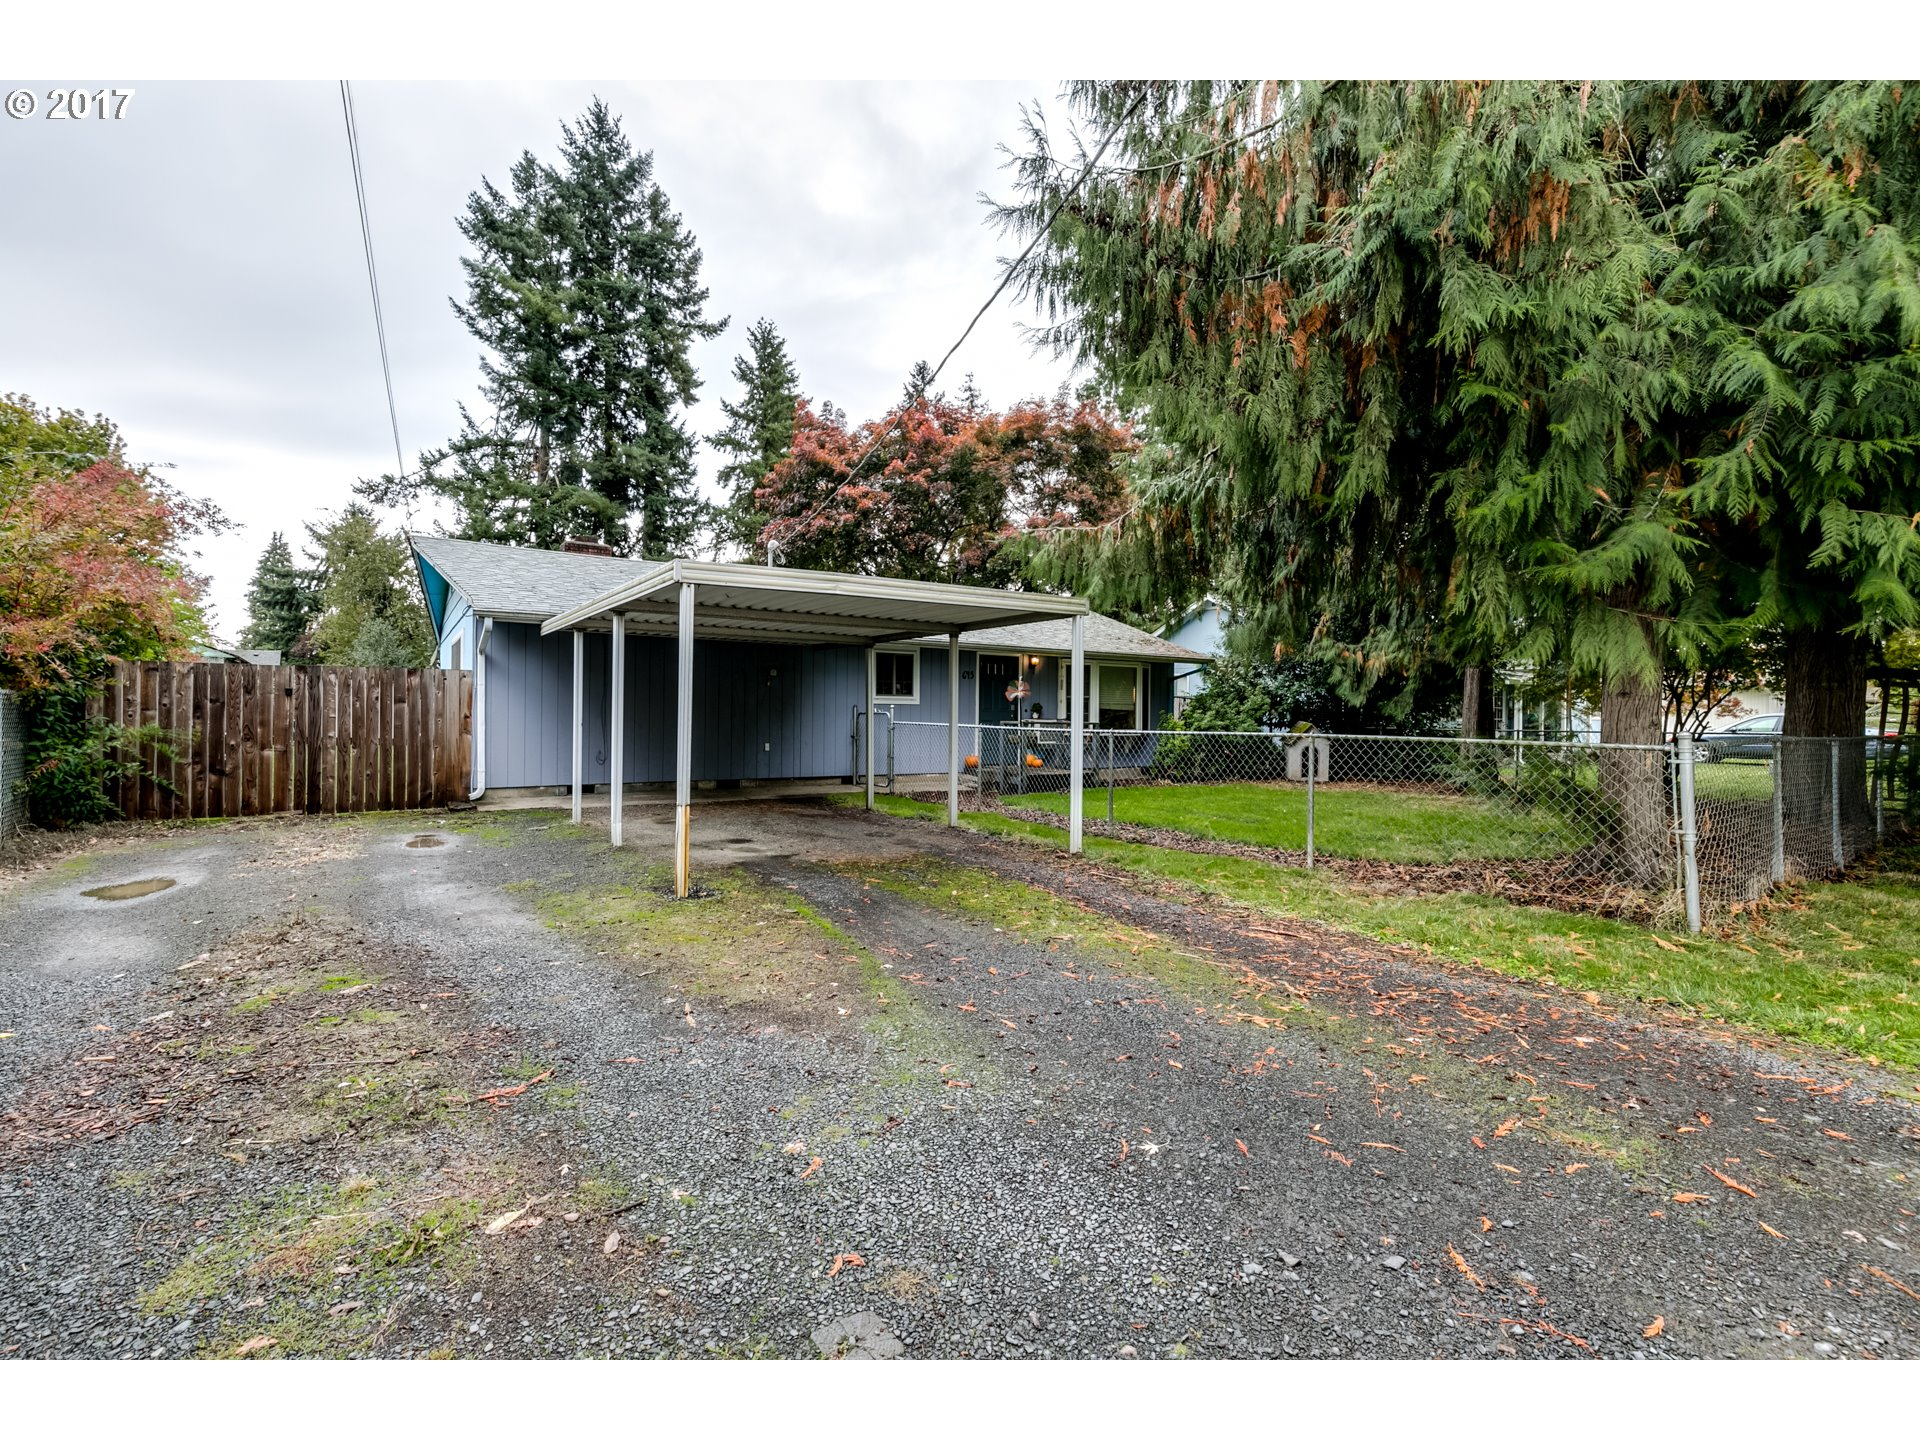 645 53RD PL, Springfield OR 97478